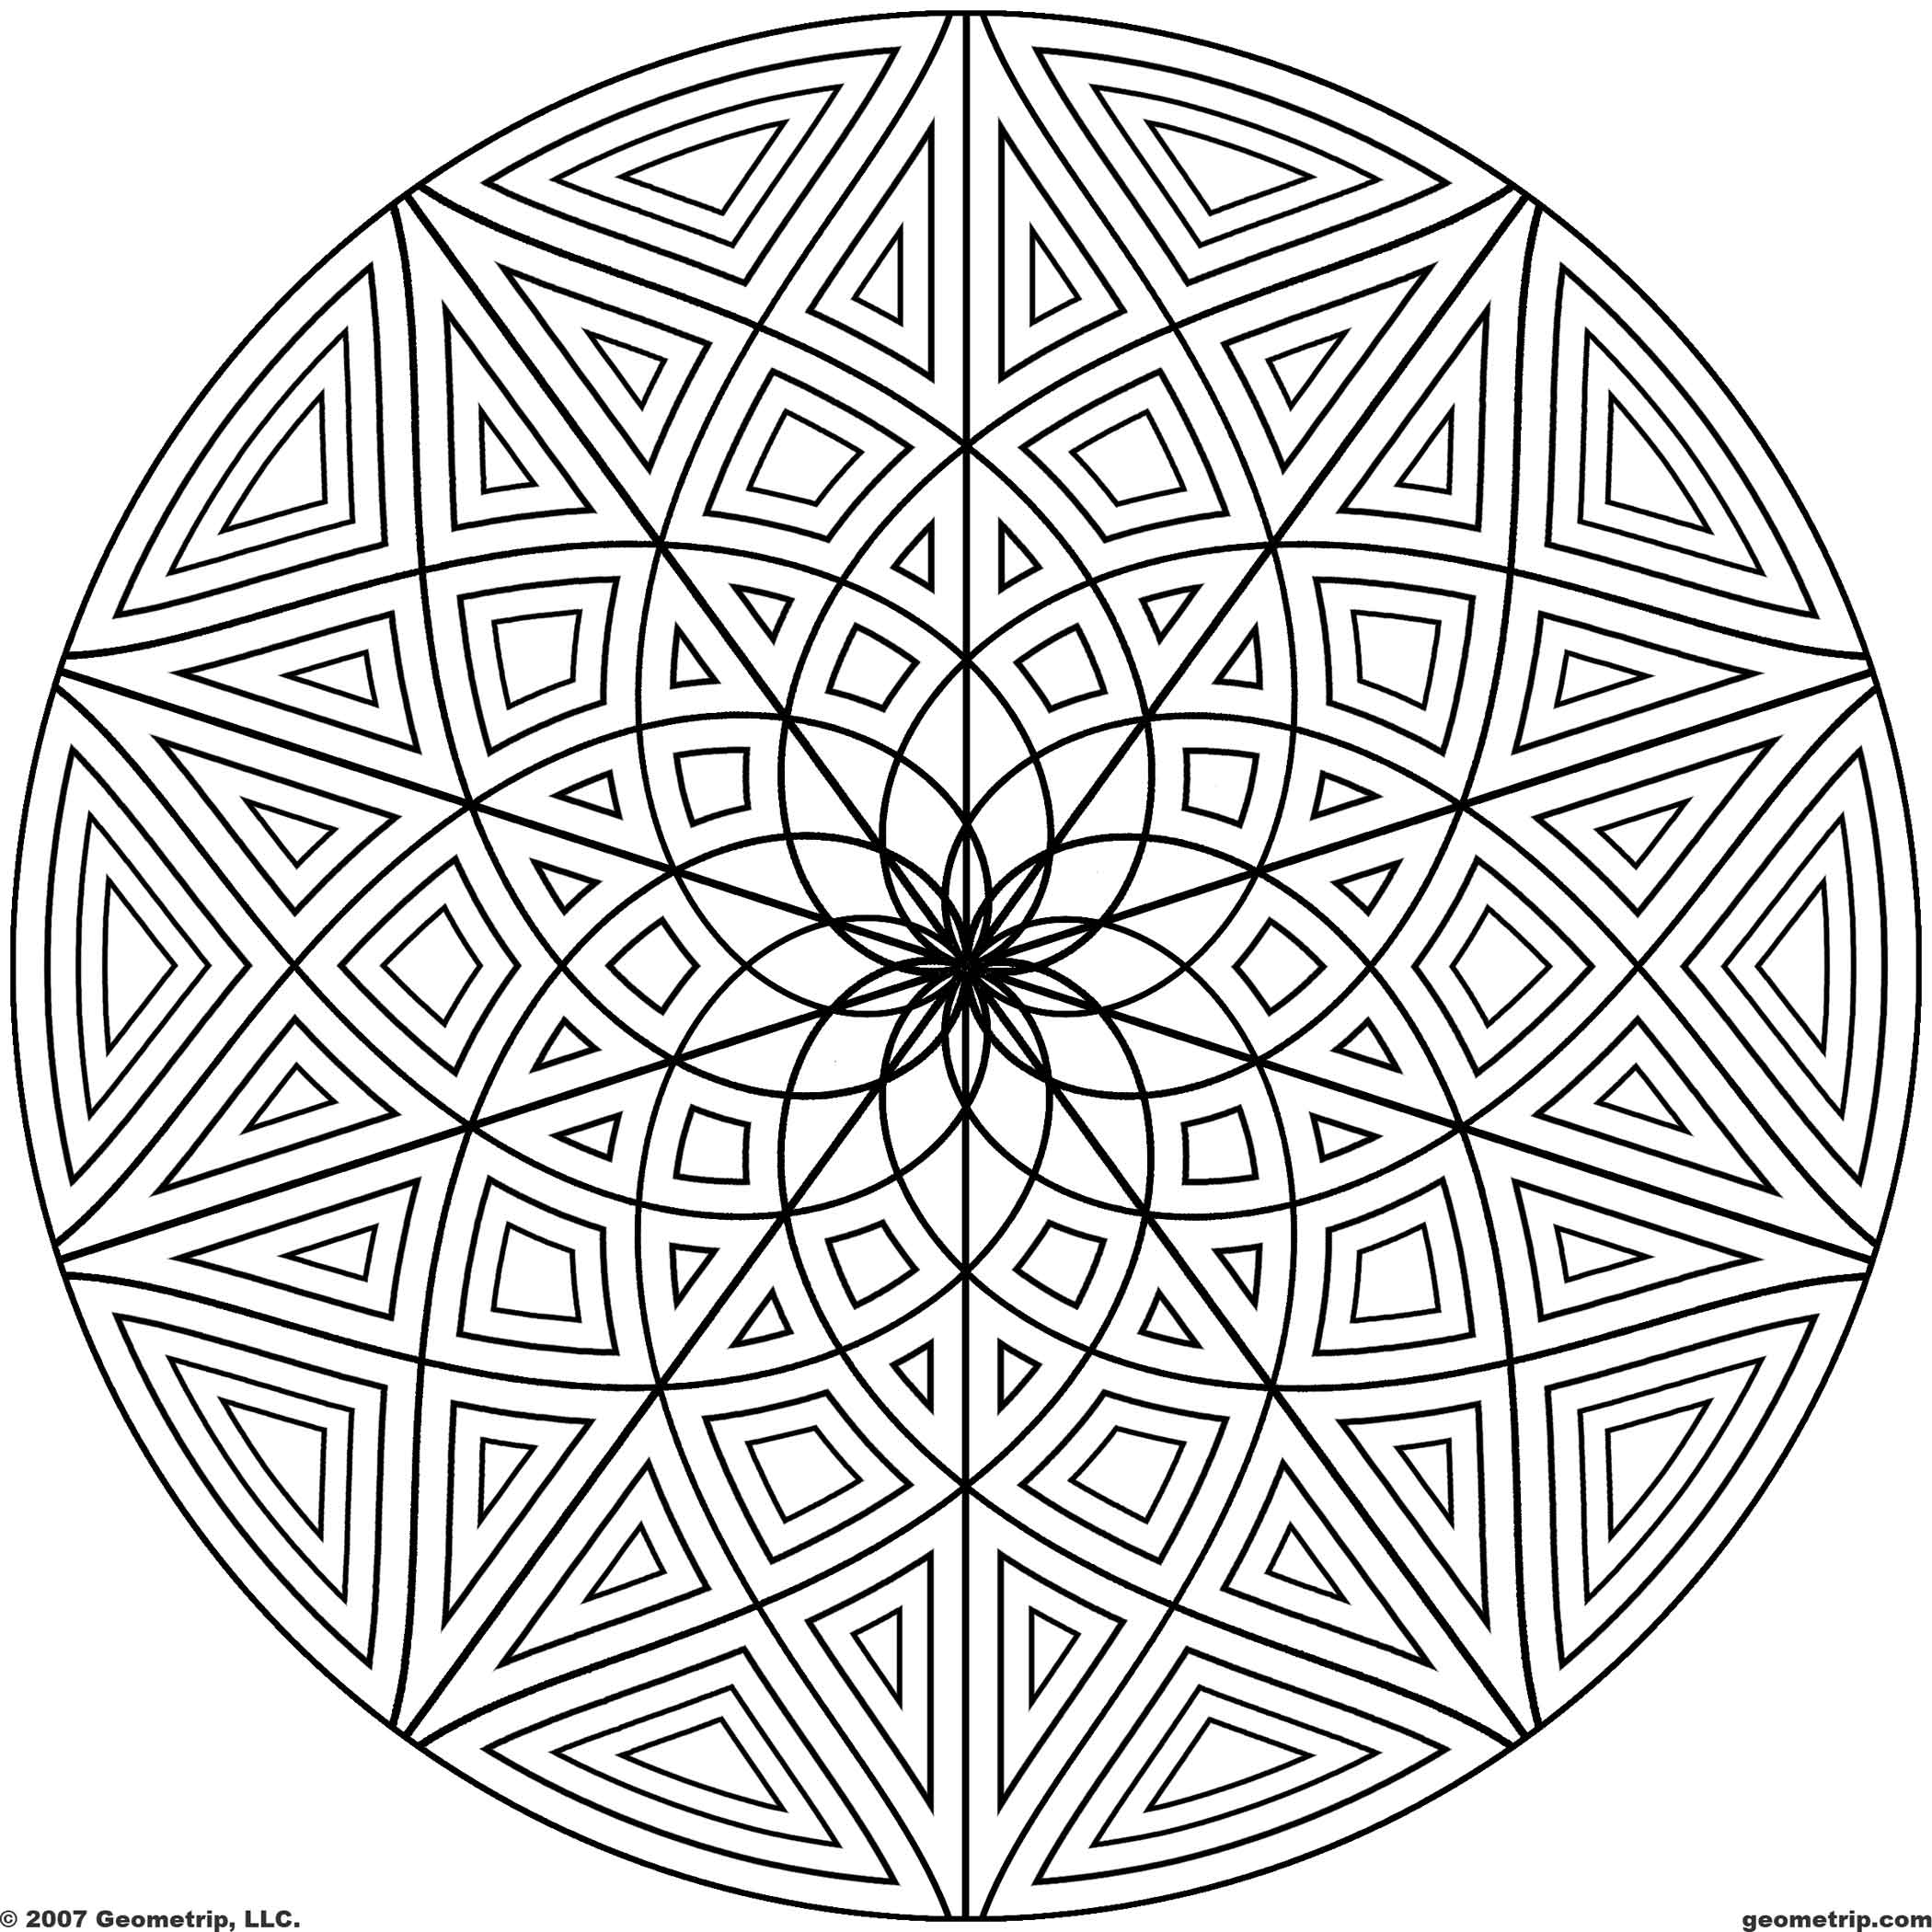 pattern colouring pages to print 17 free design shapes images free vector shapes free colouring pattern print pages to